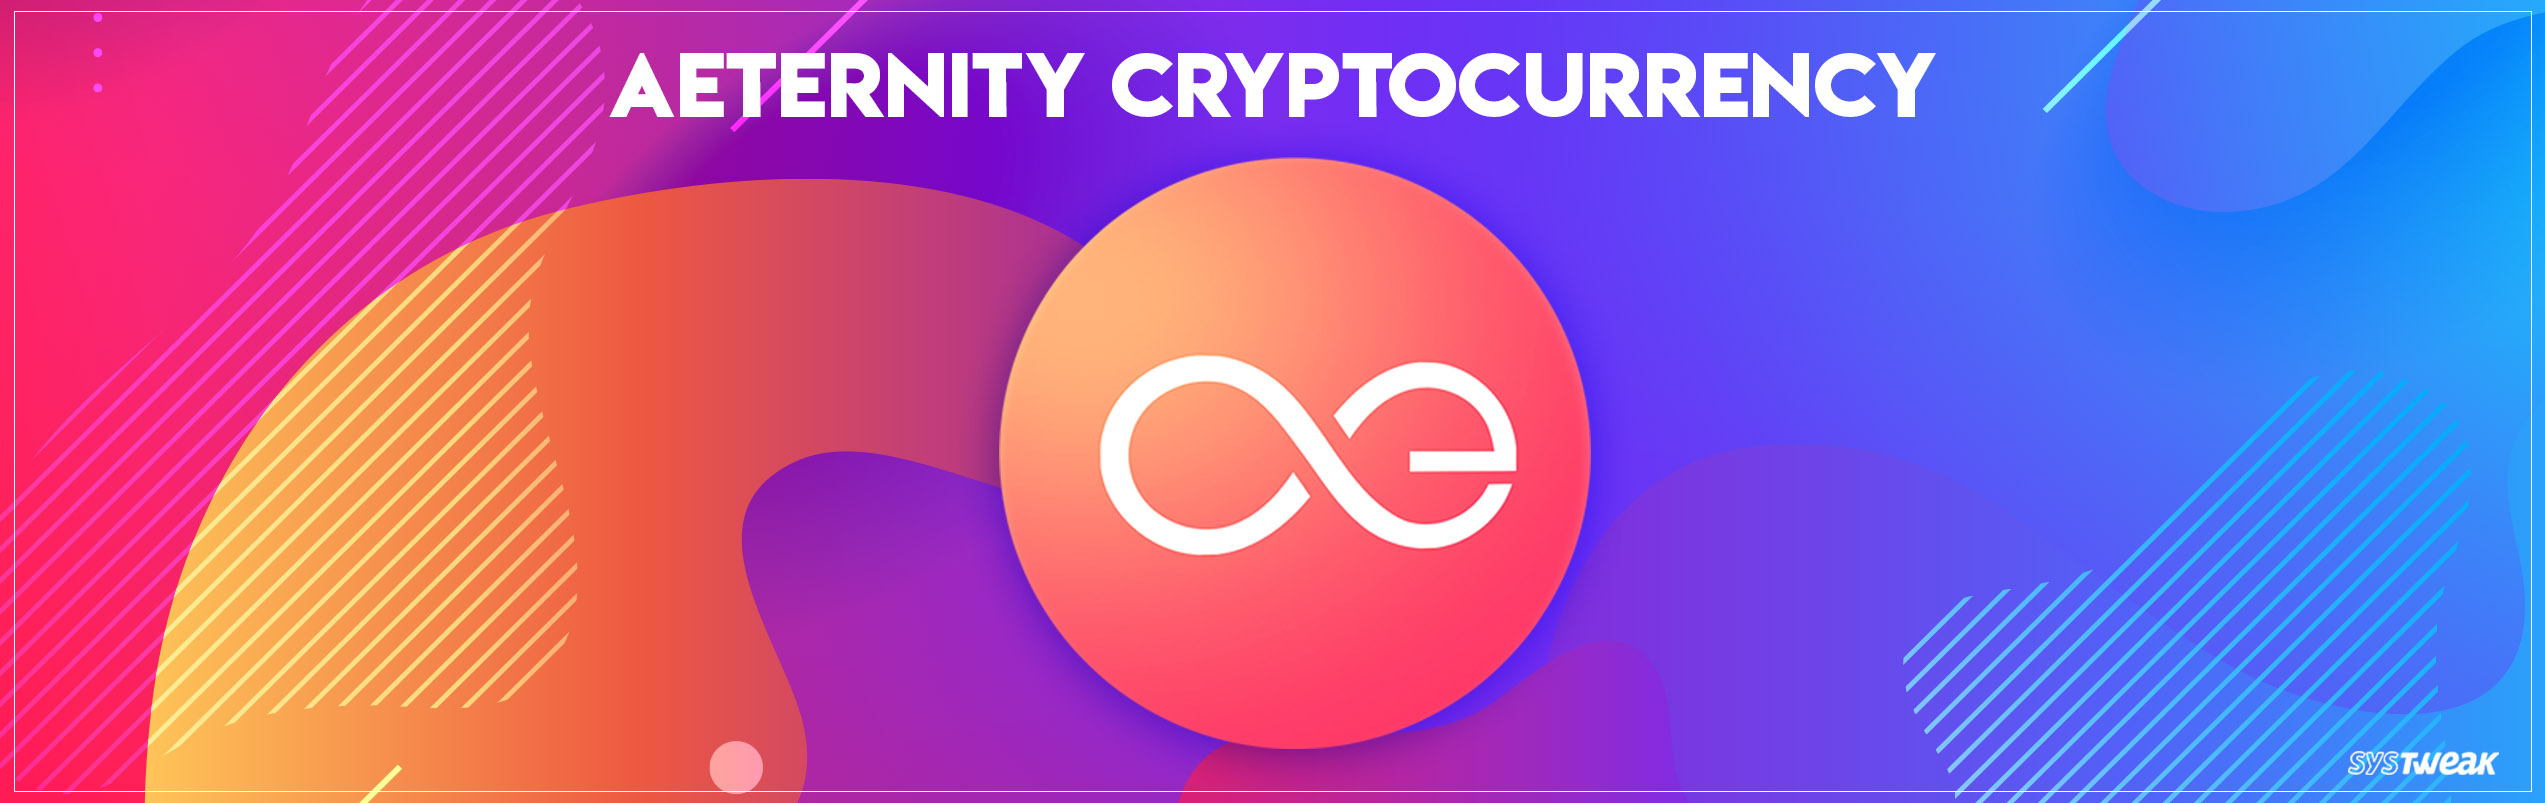 Aeternity: Cryptocurrency With A Twist!